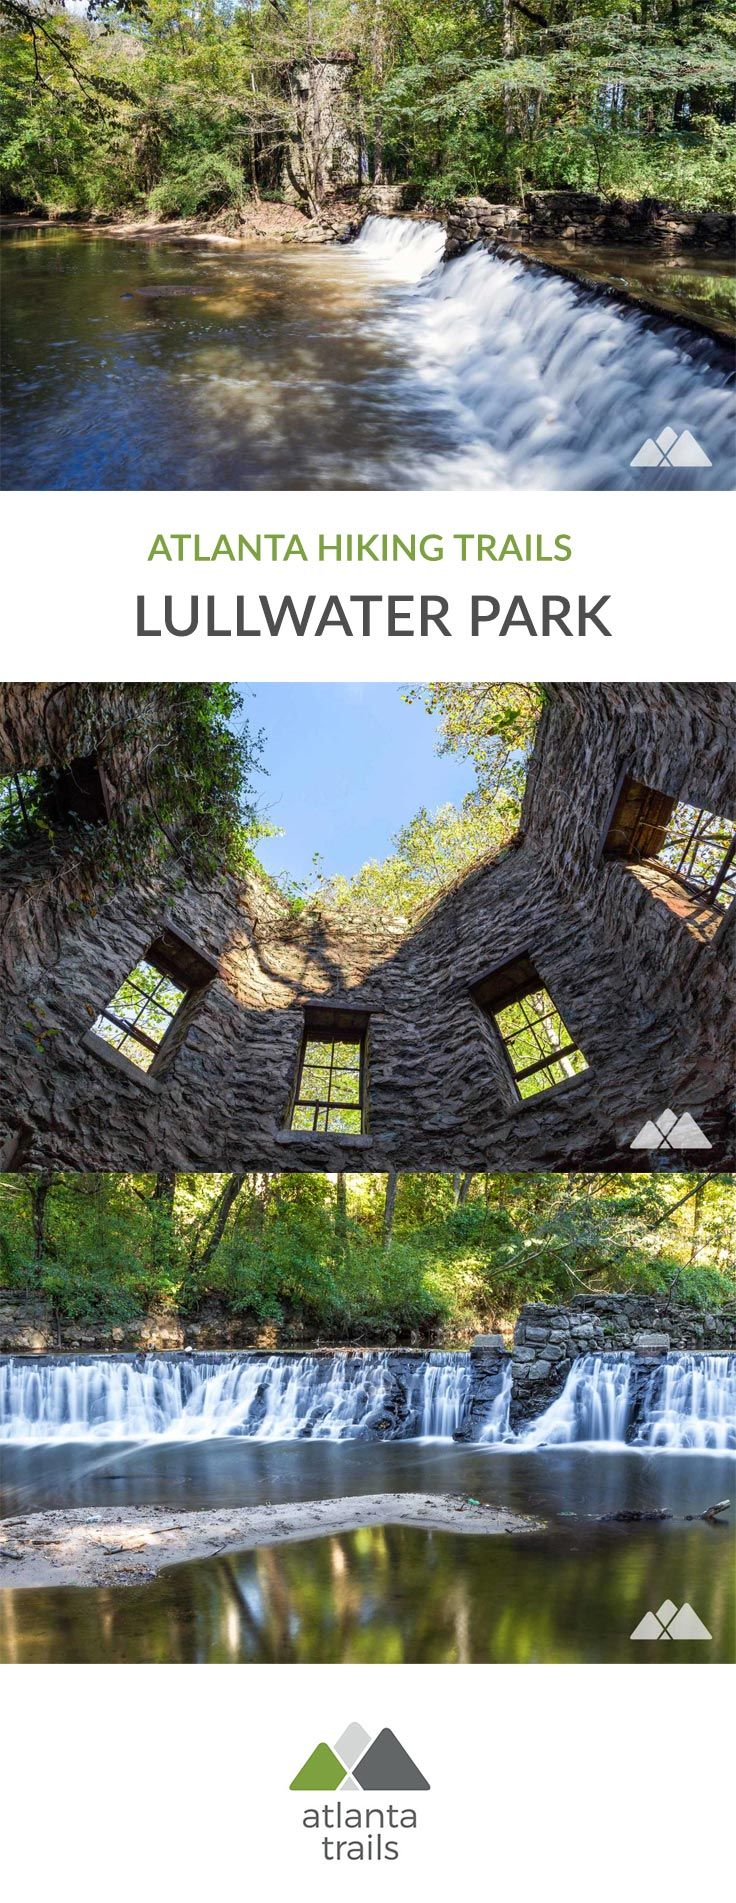 Run or walk the scenic trails at Lullwater Park.